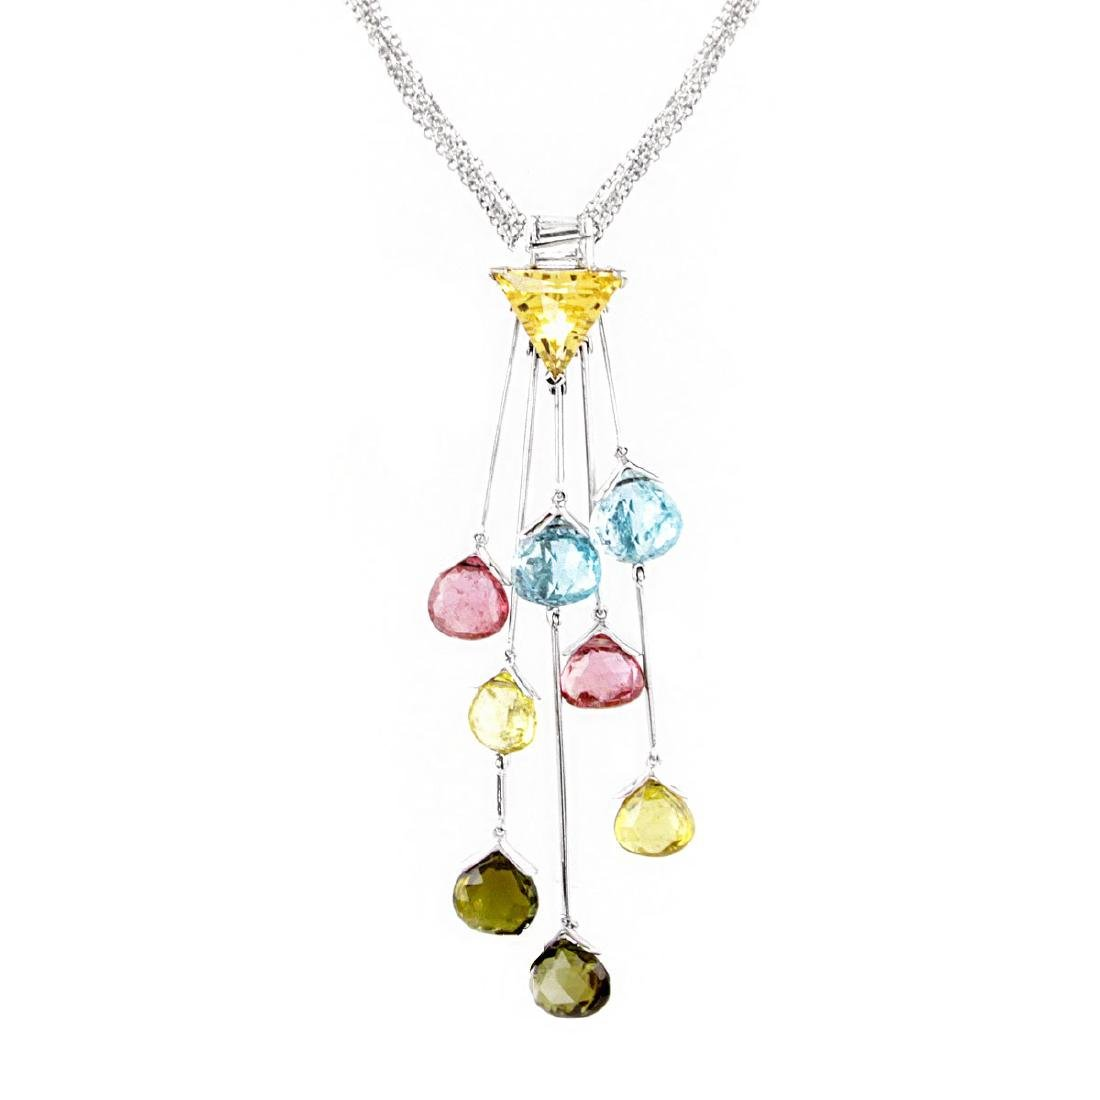 Contemporary Multi Gemstone and 18K Gold Necklace